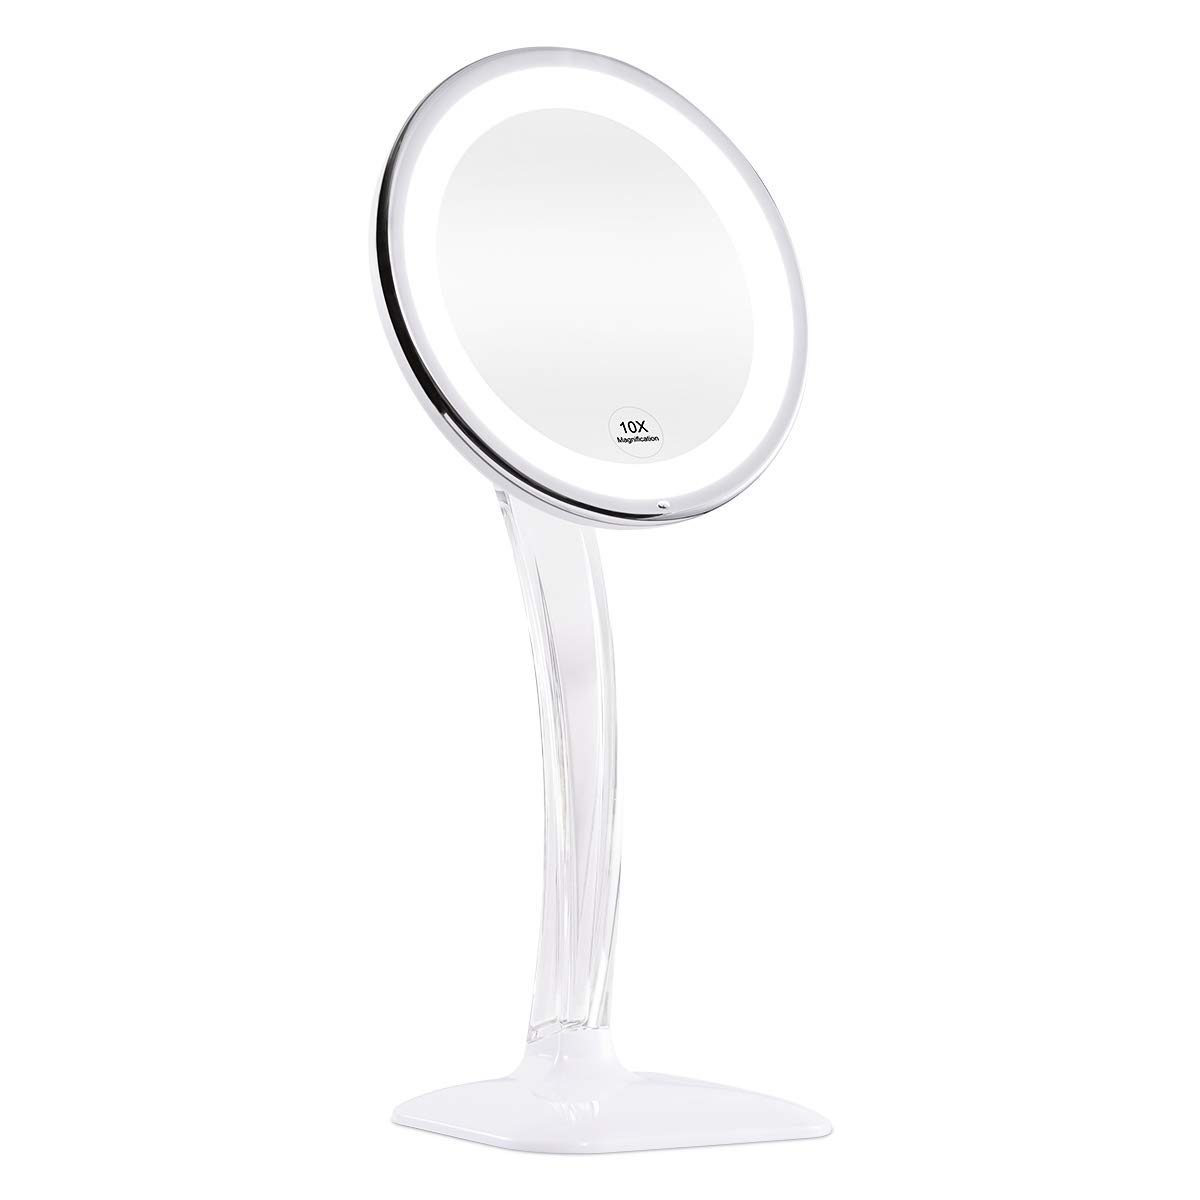 KEDSUM Upgraded 10X Magnifying Lighted Makeup Mirror, Desktop Vanity Mirror with Height 12.6-16.2 , Cosmetic Magnification Mirror with Lights, Dual Power Supply, Wireless Tabletop Lighted Mirror